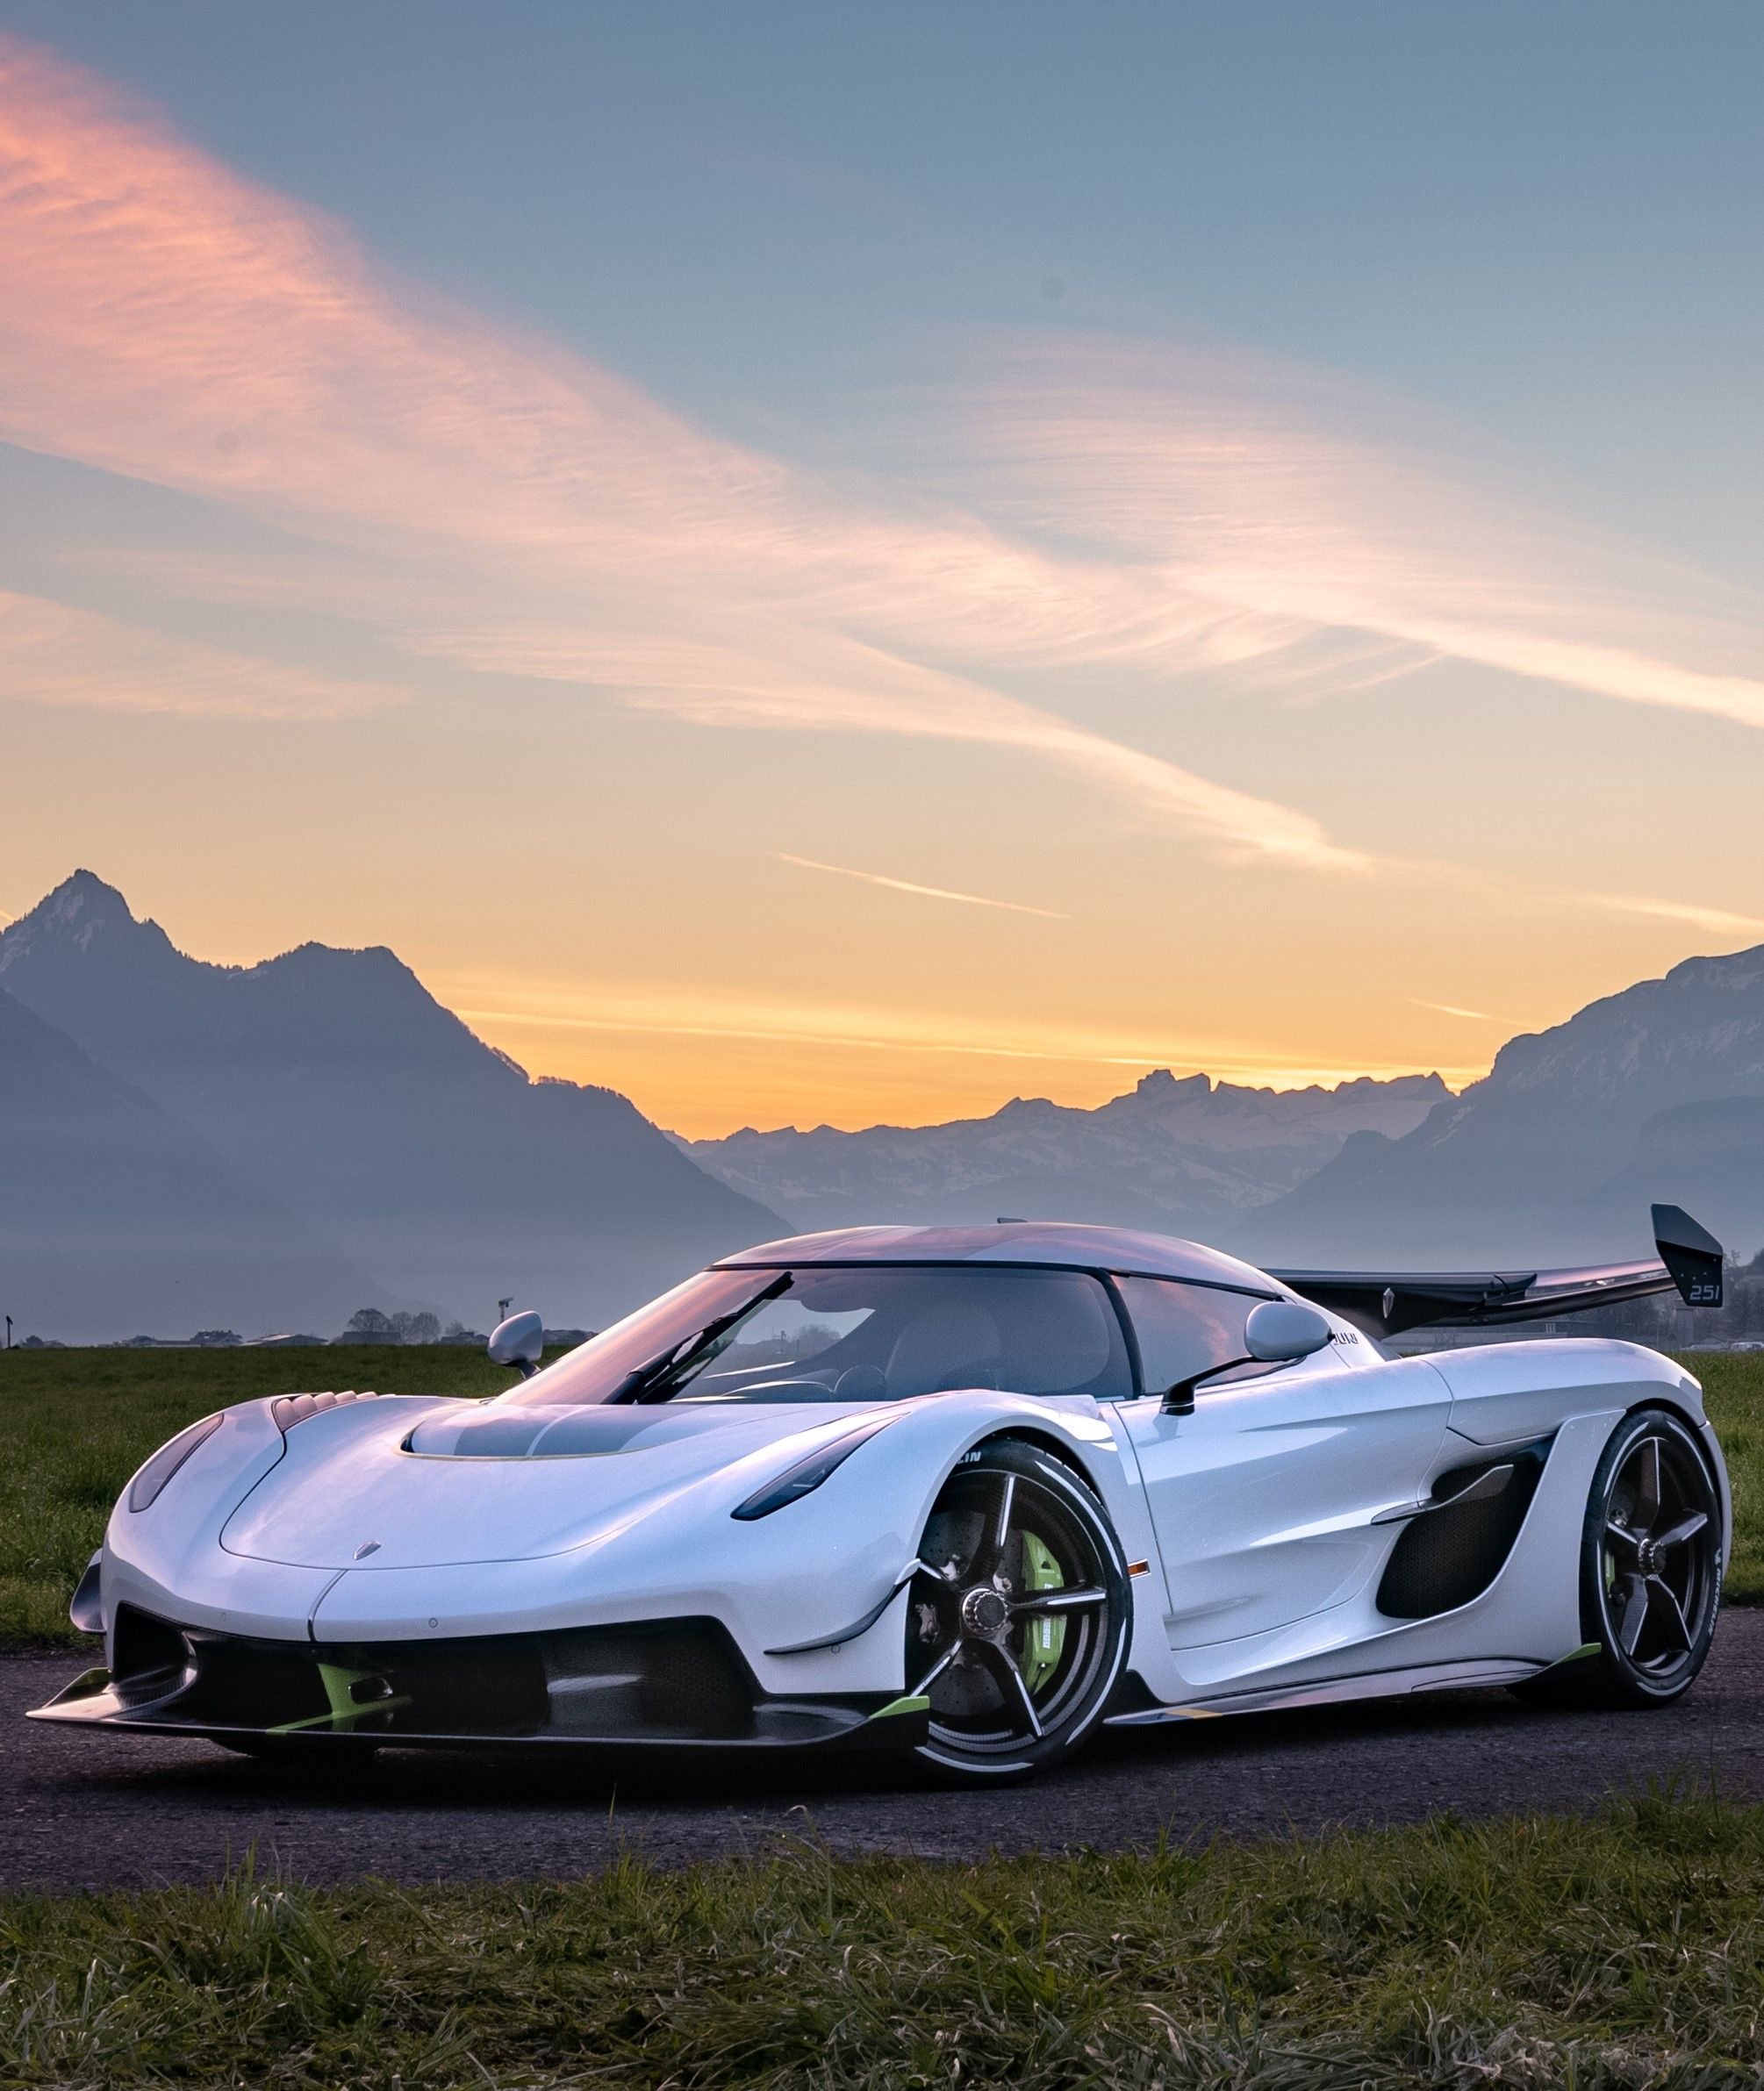 2019 Koenigsegg Jesko Hypercar The Man Koenigsegg Super Cars Top Cars